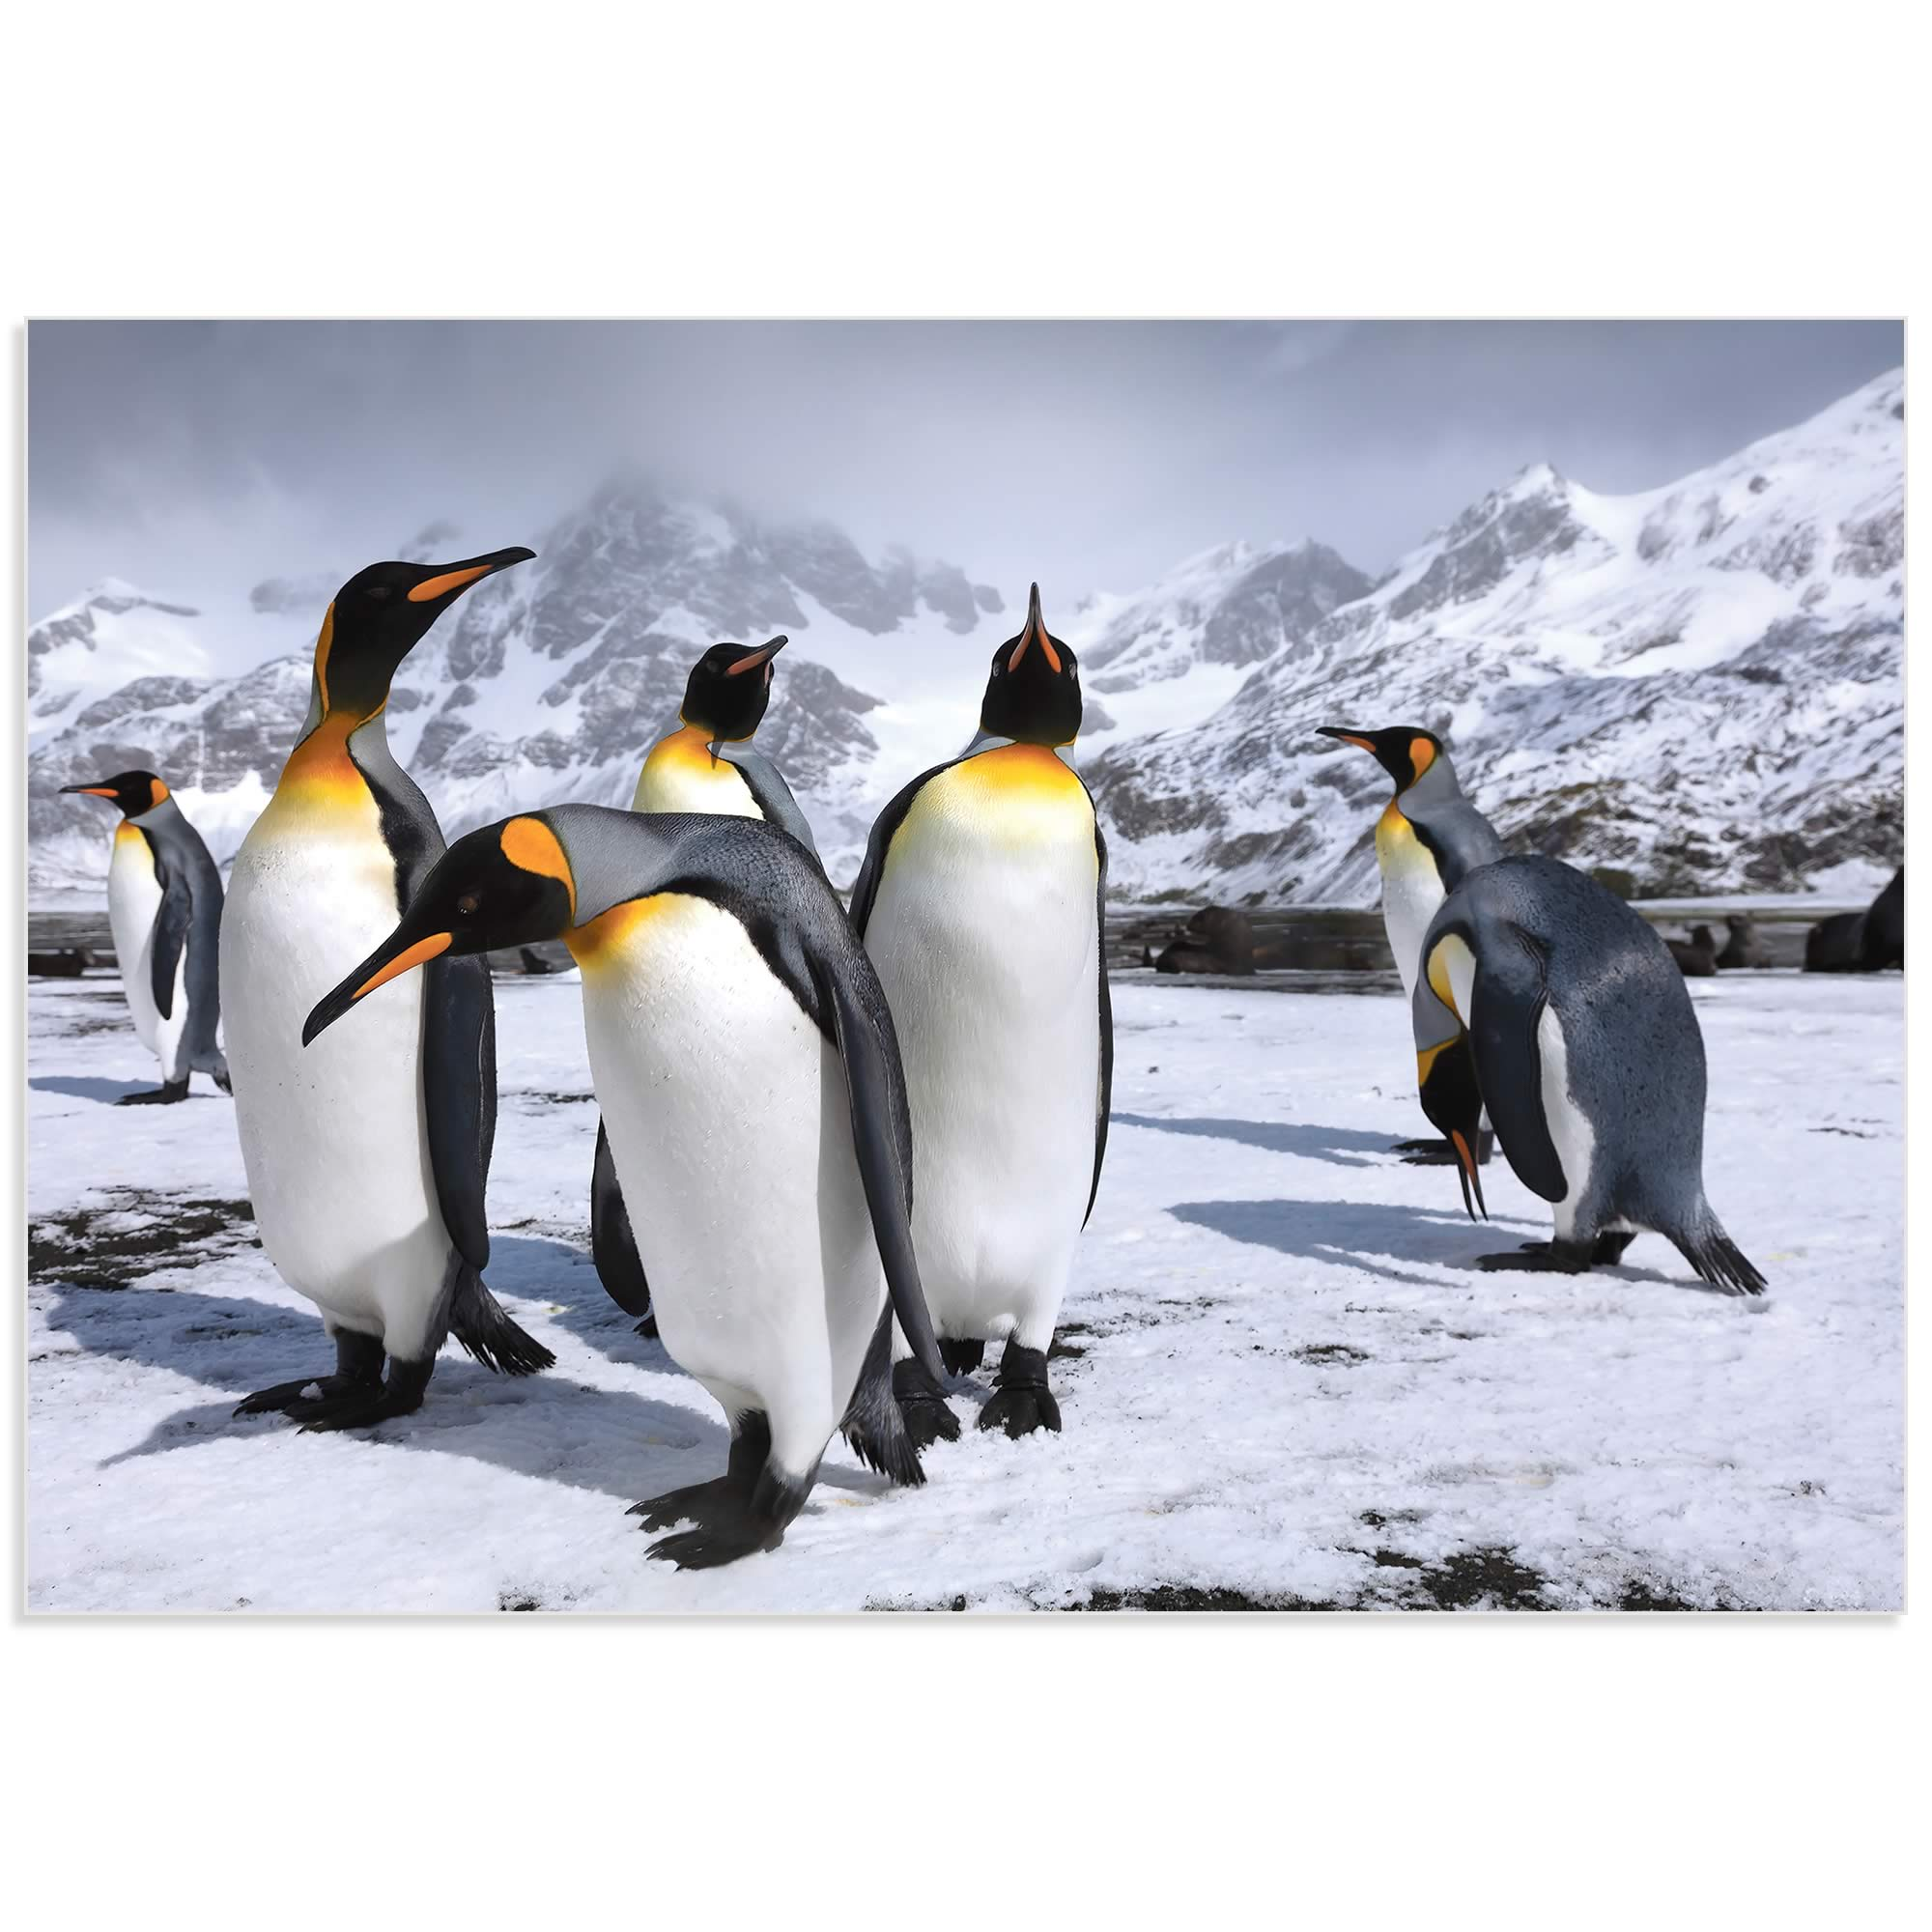 King Penguins at the Bay by Steph Oli - Penguin Wall Art on Metal or Acrylic - Alternate View 2